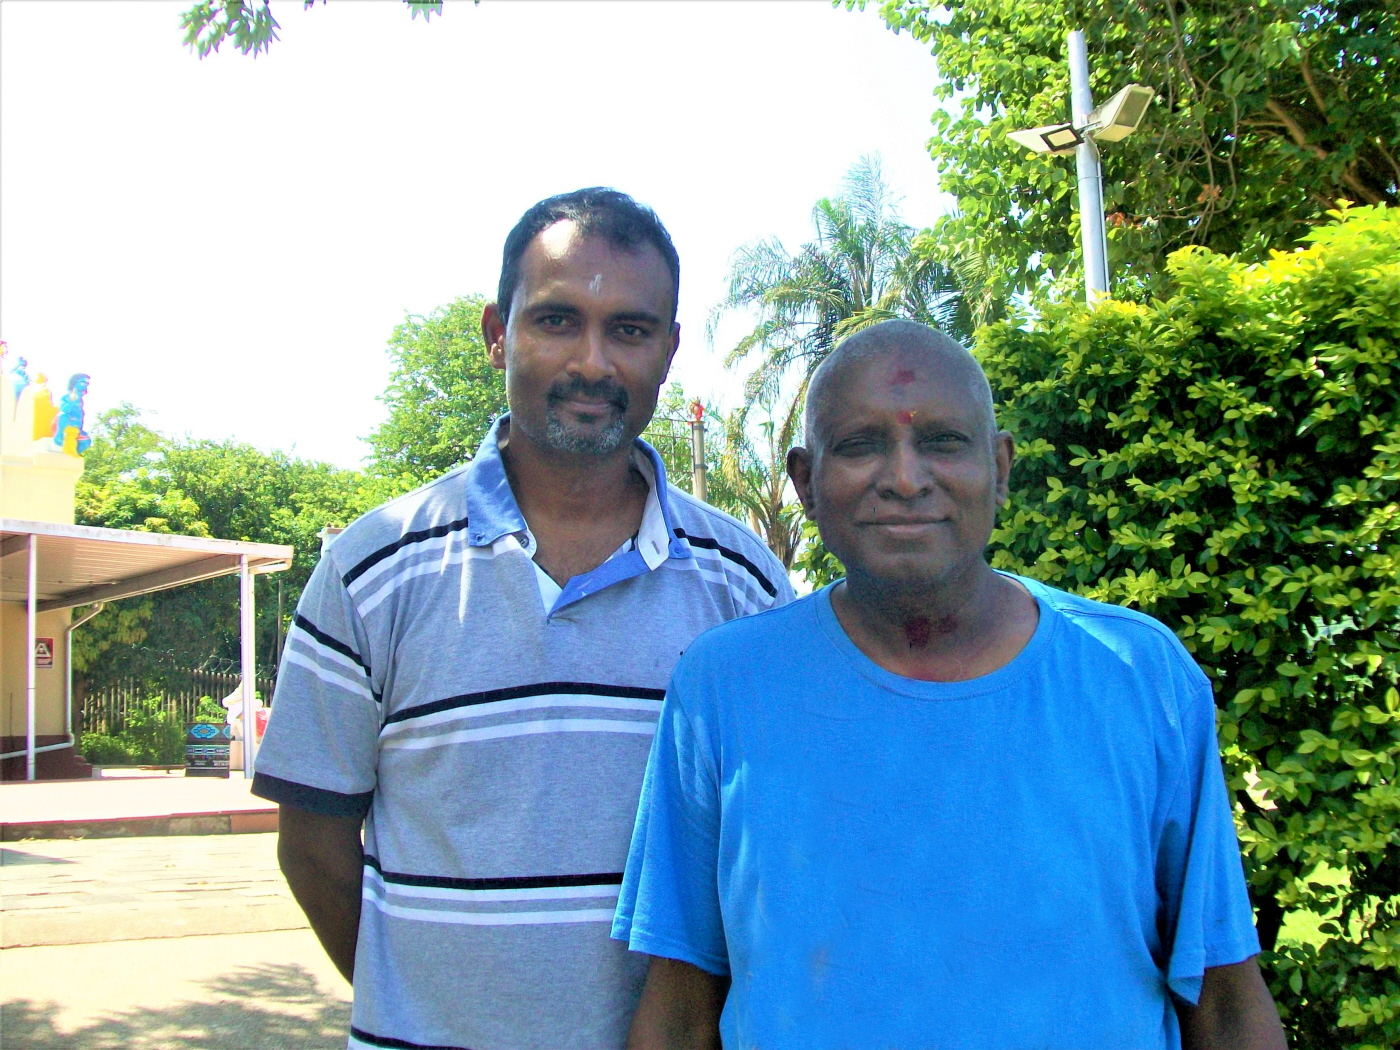 Guruji Dhanasagren Govender - Spiritual Leader of Umbilo Shree Amvalavaanar Alayam (Right) & Theshin Naicker the Embrace Founders Kind Guide (Left)